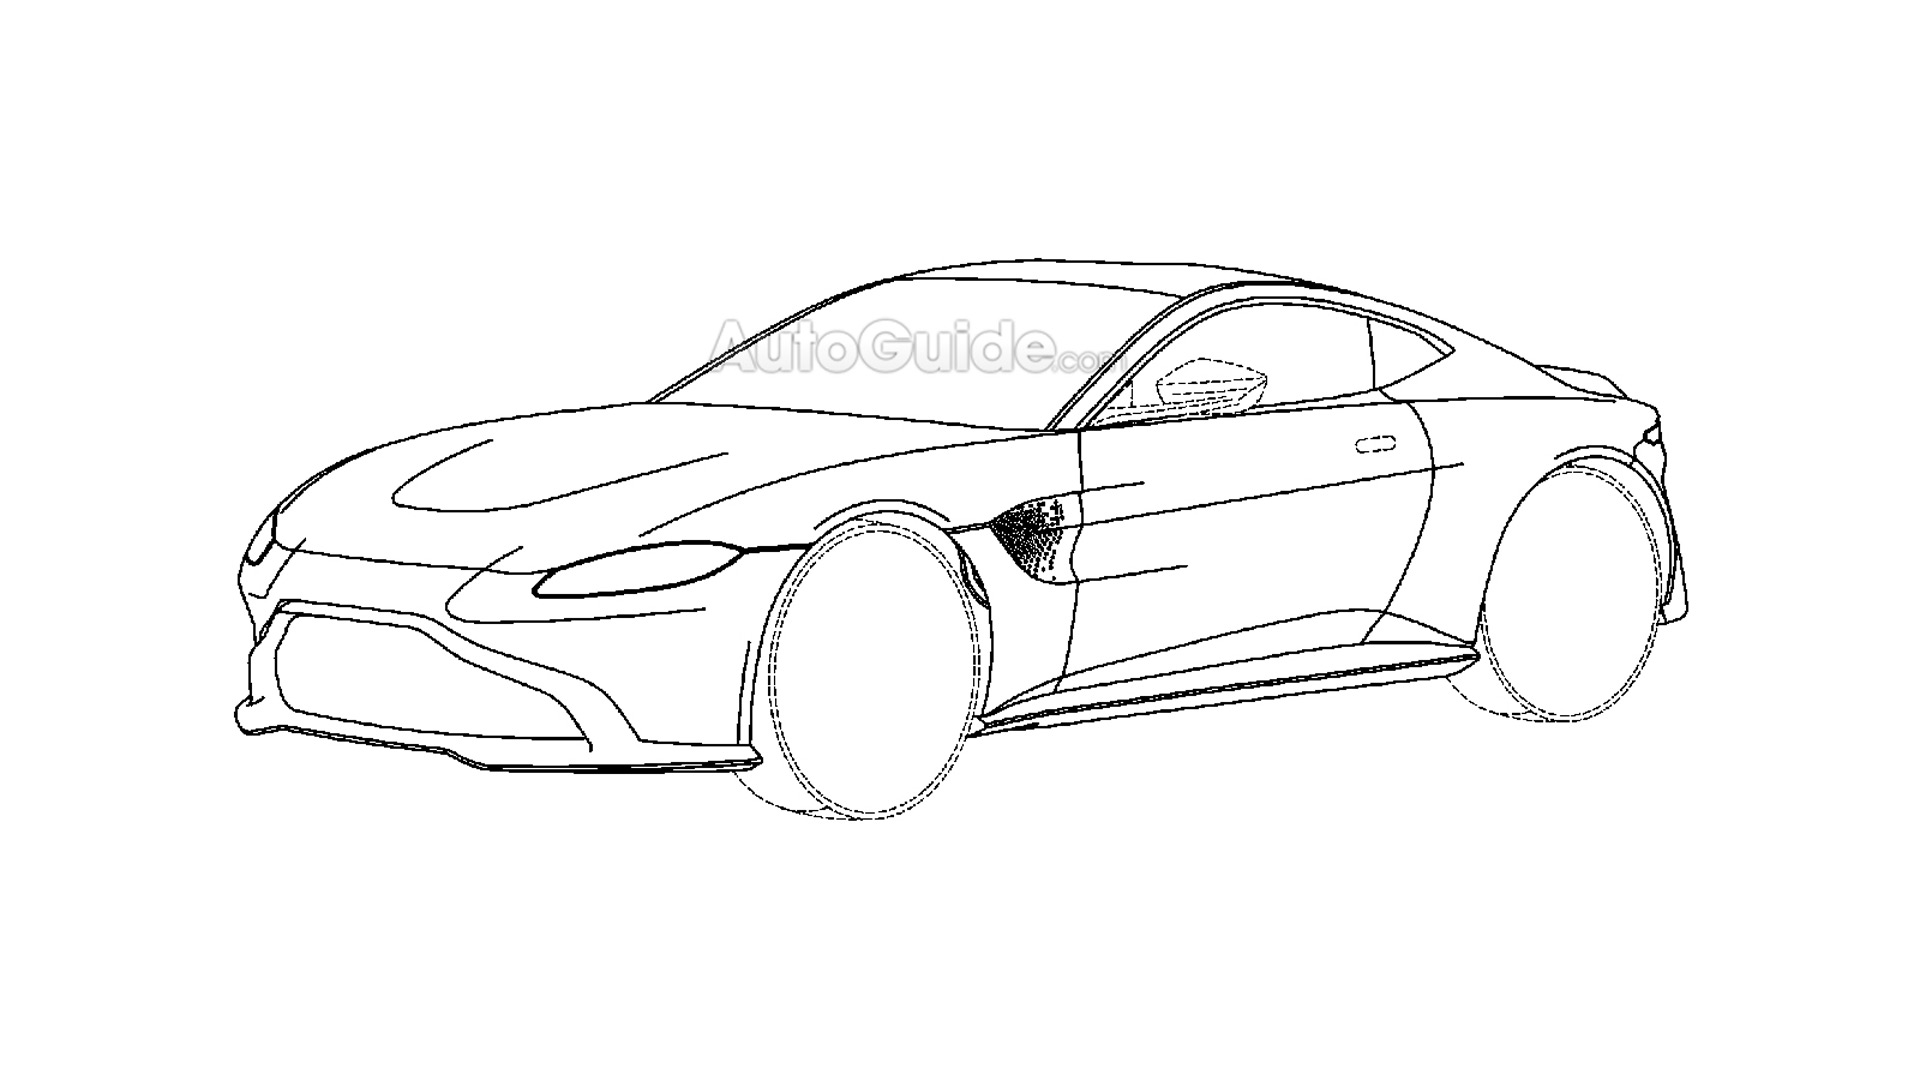 Nissan Gt R together with Hawkeye Coloring Pages as well Deadpool Coloring Pages additionally 64 7 gto wiper pic further Donut Pusheen Cat Coloring Page  7C5X3nhkdyDbDtSw9m1ksOZXrysyiNlNouSBdgAo46e0. on muscle car